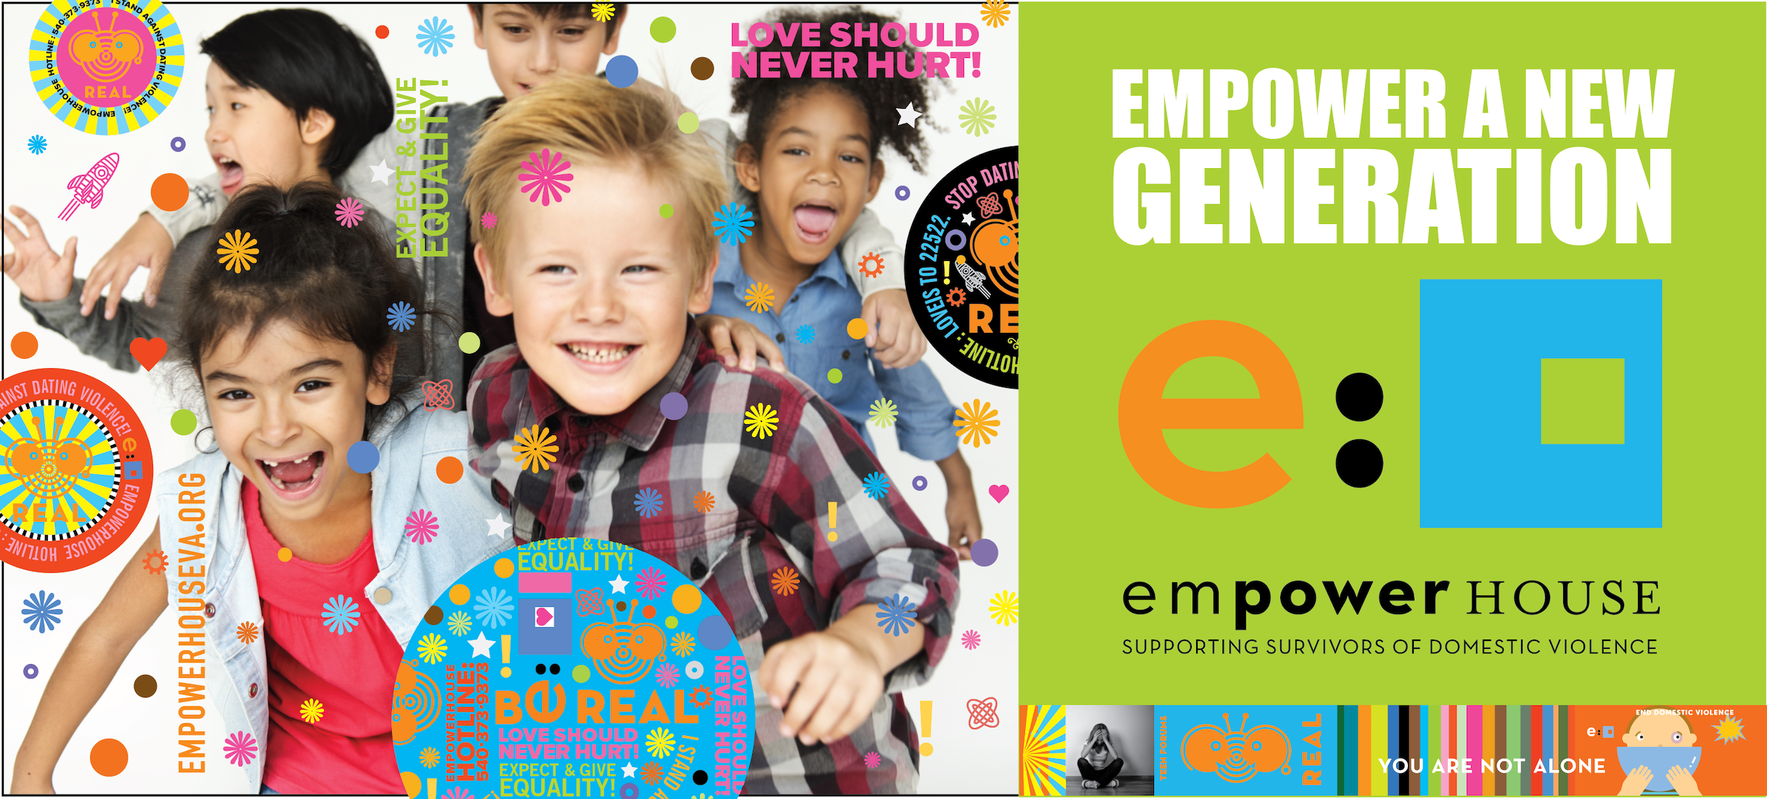 When you Empower a Child, you Empower a New Generation. image